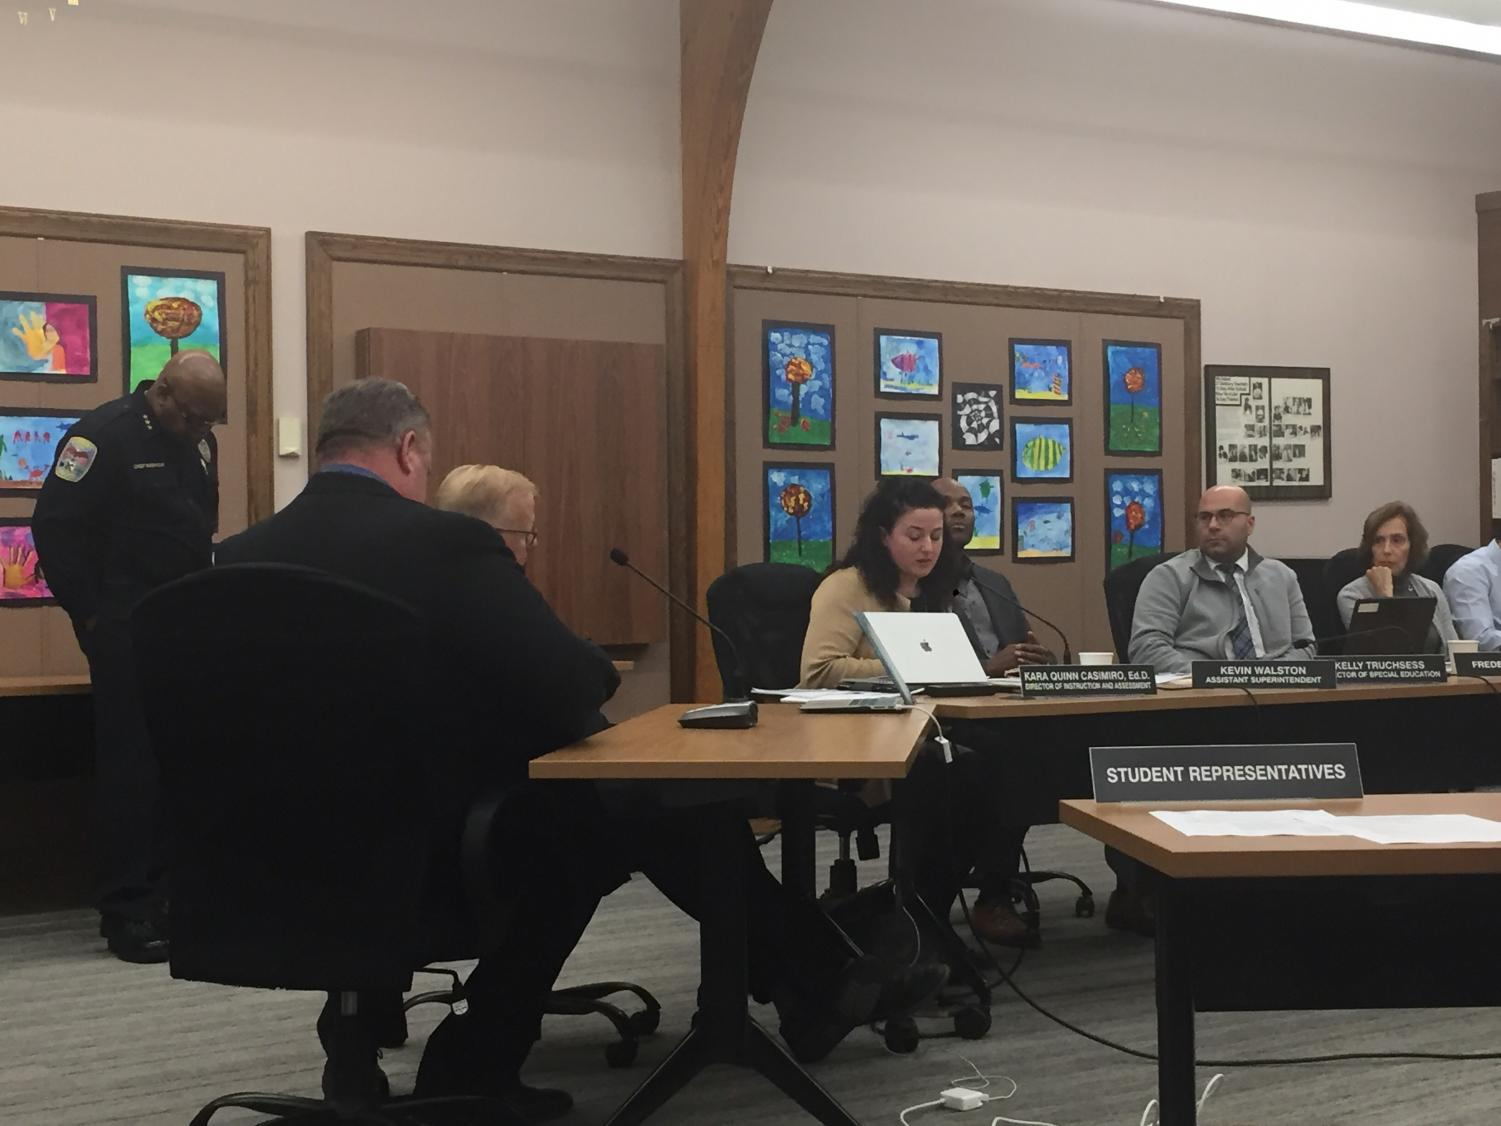 Mayor Mark Boughton and Principal Dan Donovan sit in front of the Danbury Board of Education on Nov. 26 to address conflicts in the past week.